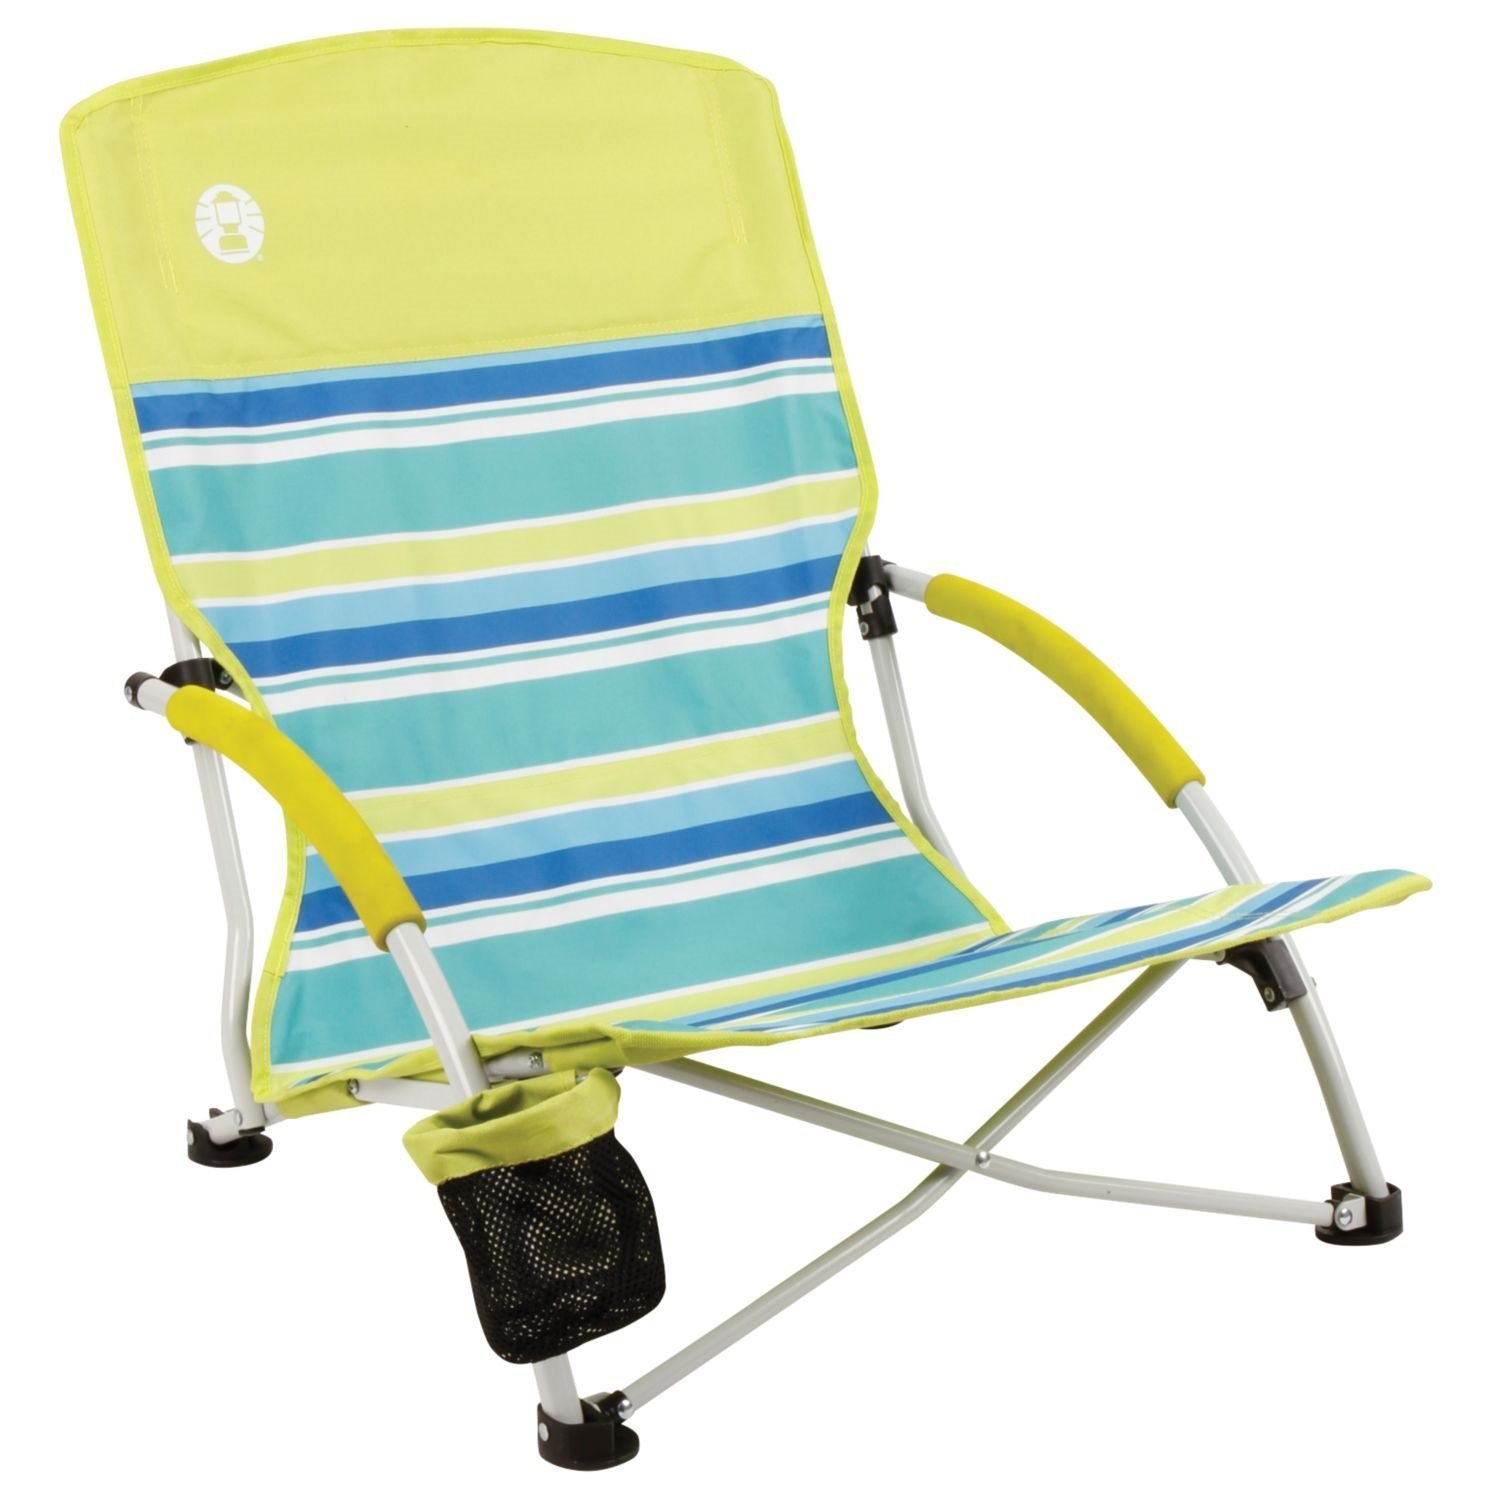 Review of Coleman Utopia Breeze Beach Sling Chair